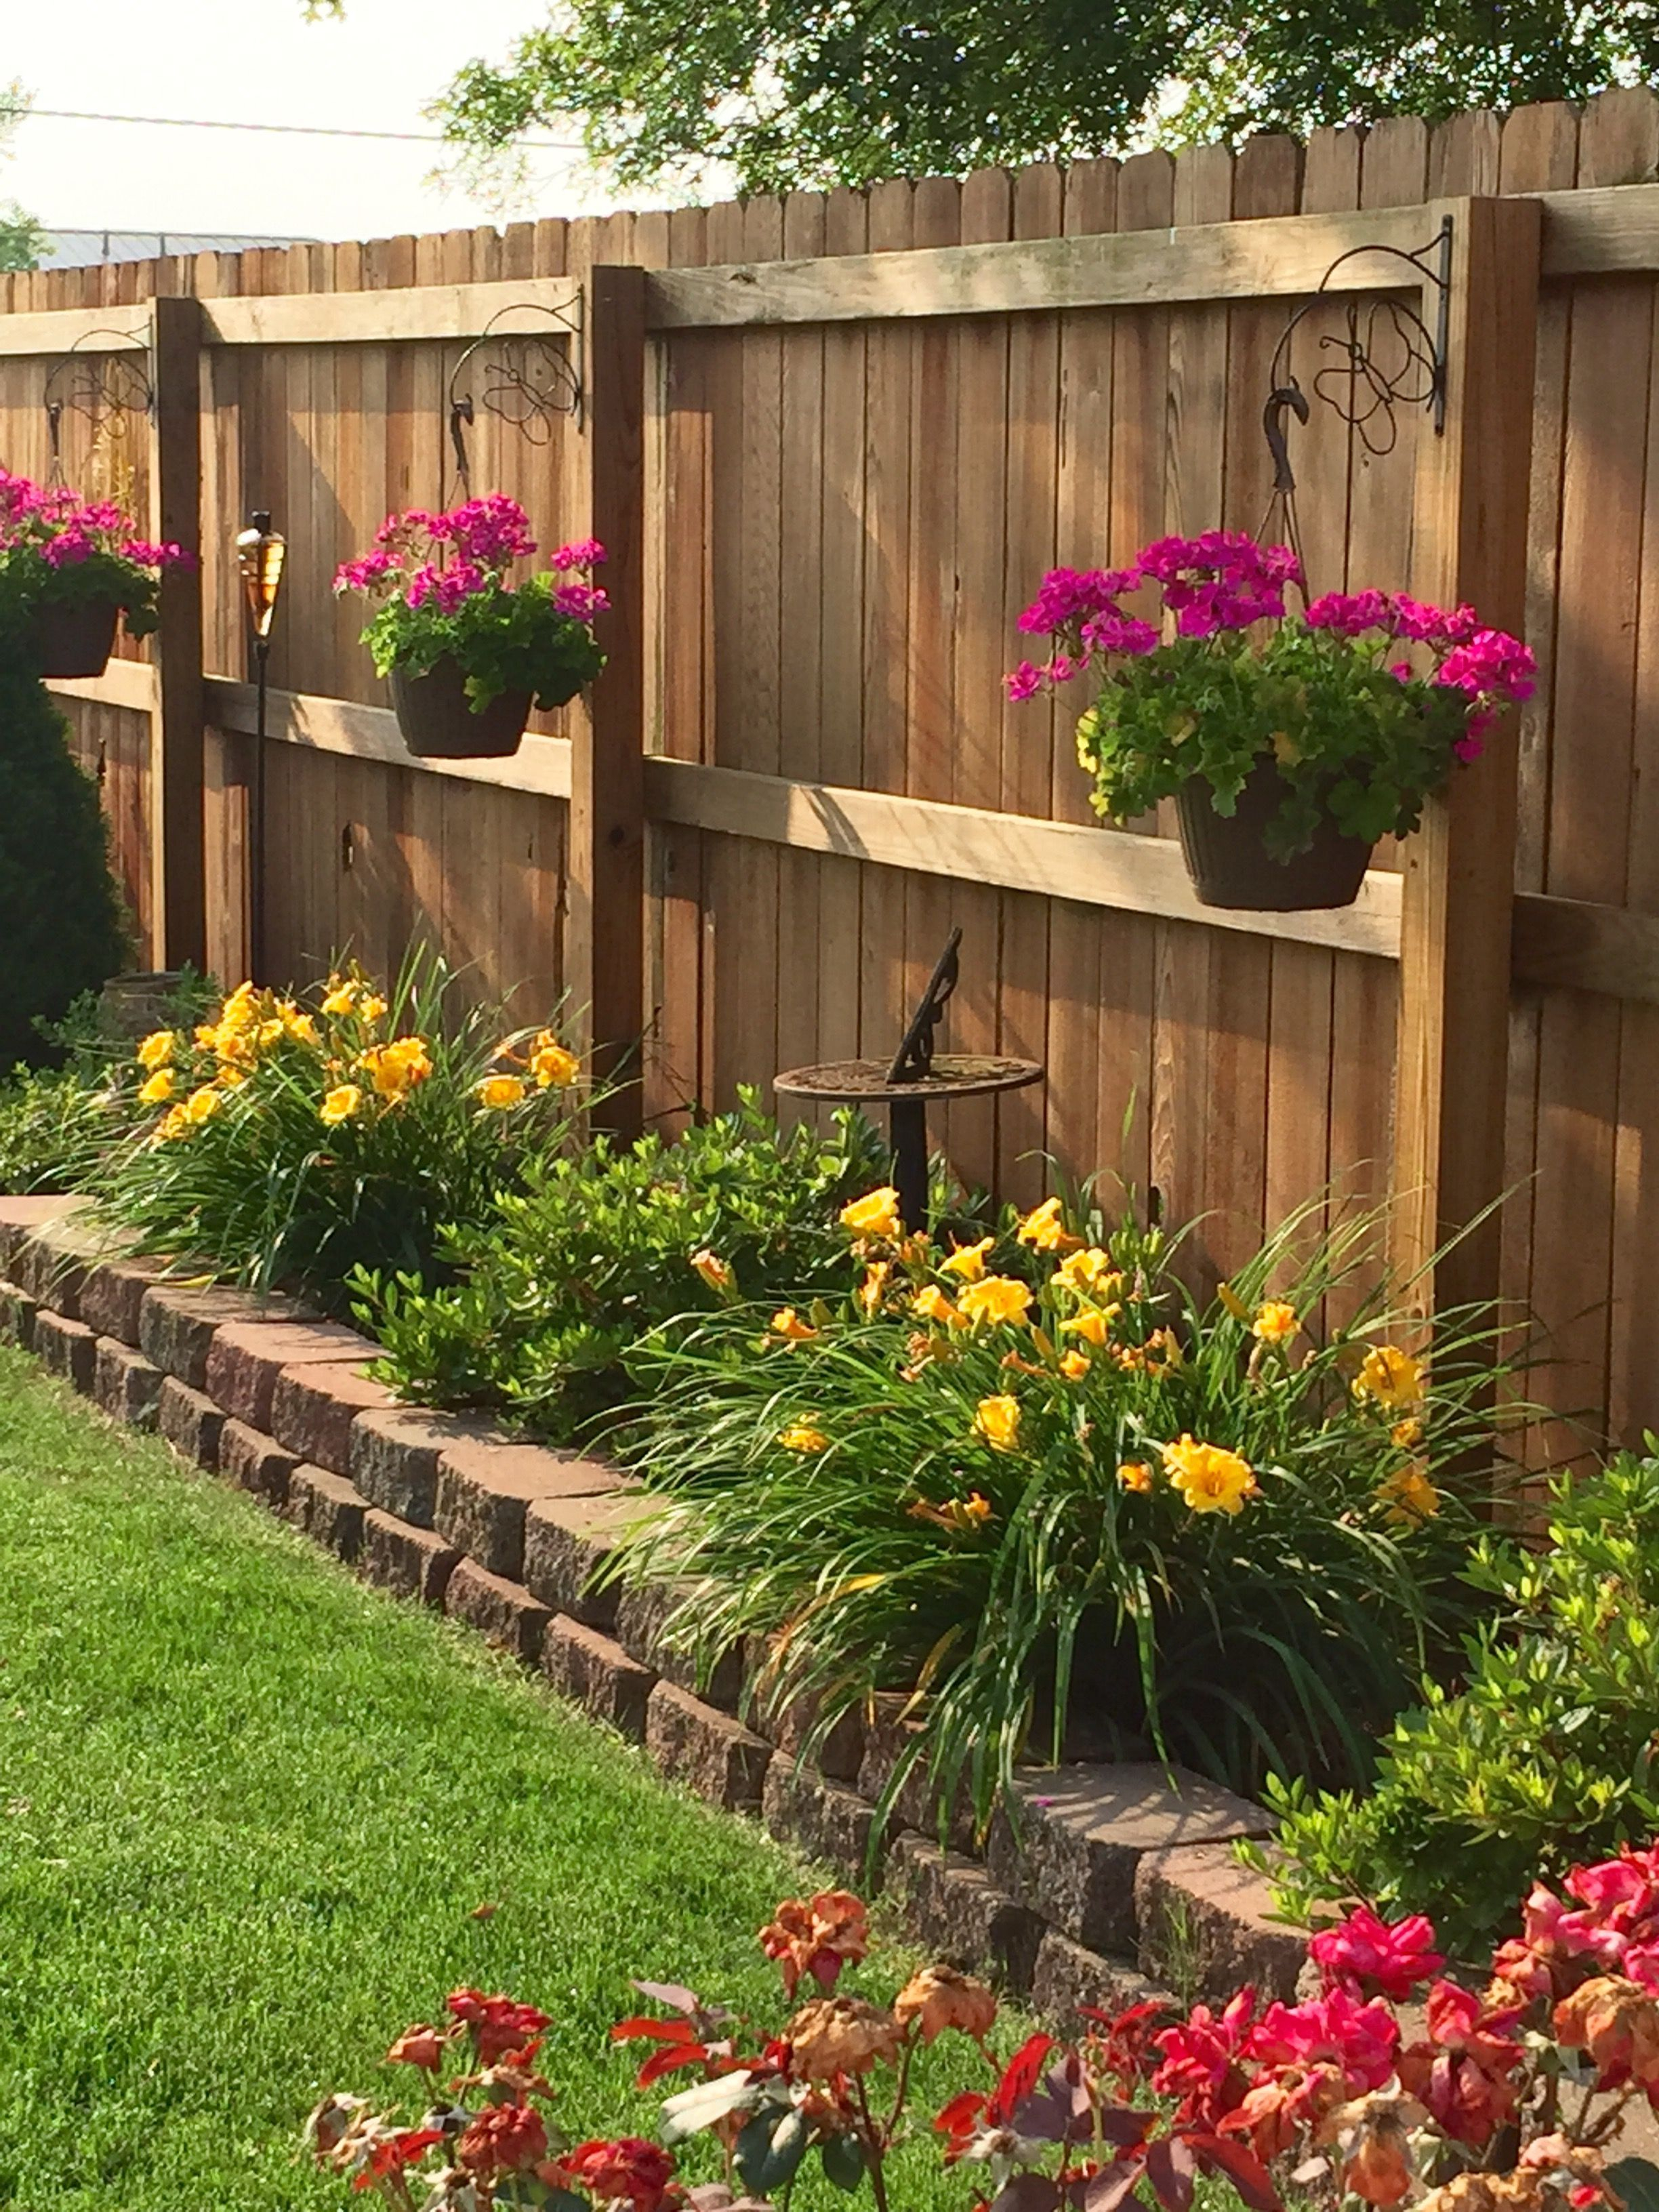 27 The Best Decorating Ideas For Patio Fences In 2019 Best in Backyard Garden Ideas For Small Yards